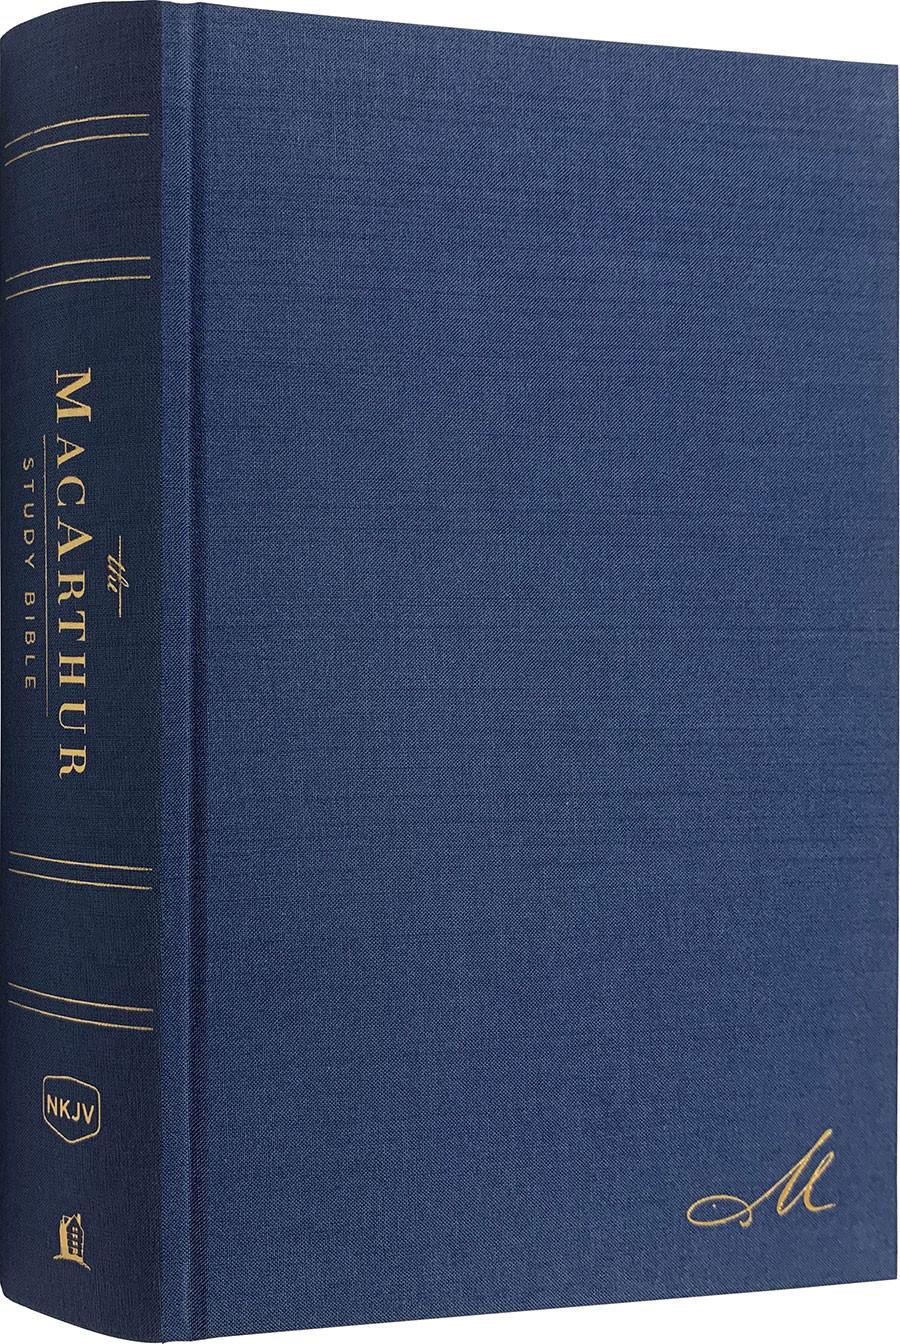 NKJV MacArthur Study Bible (Second Edition, Hardcover)